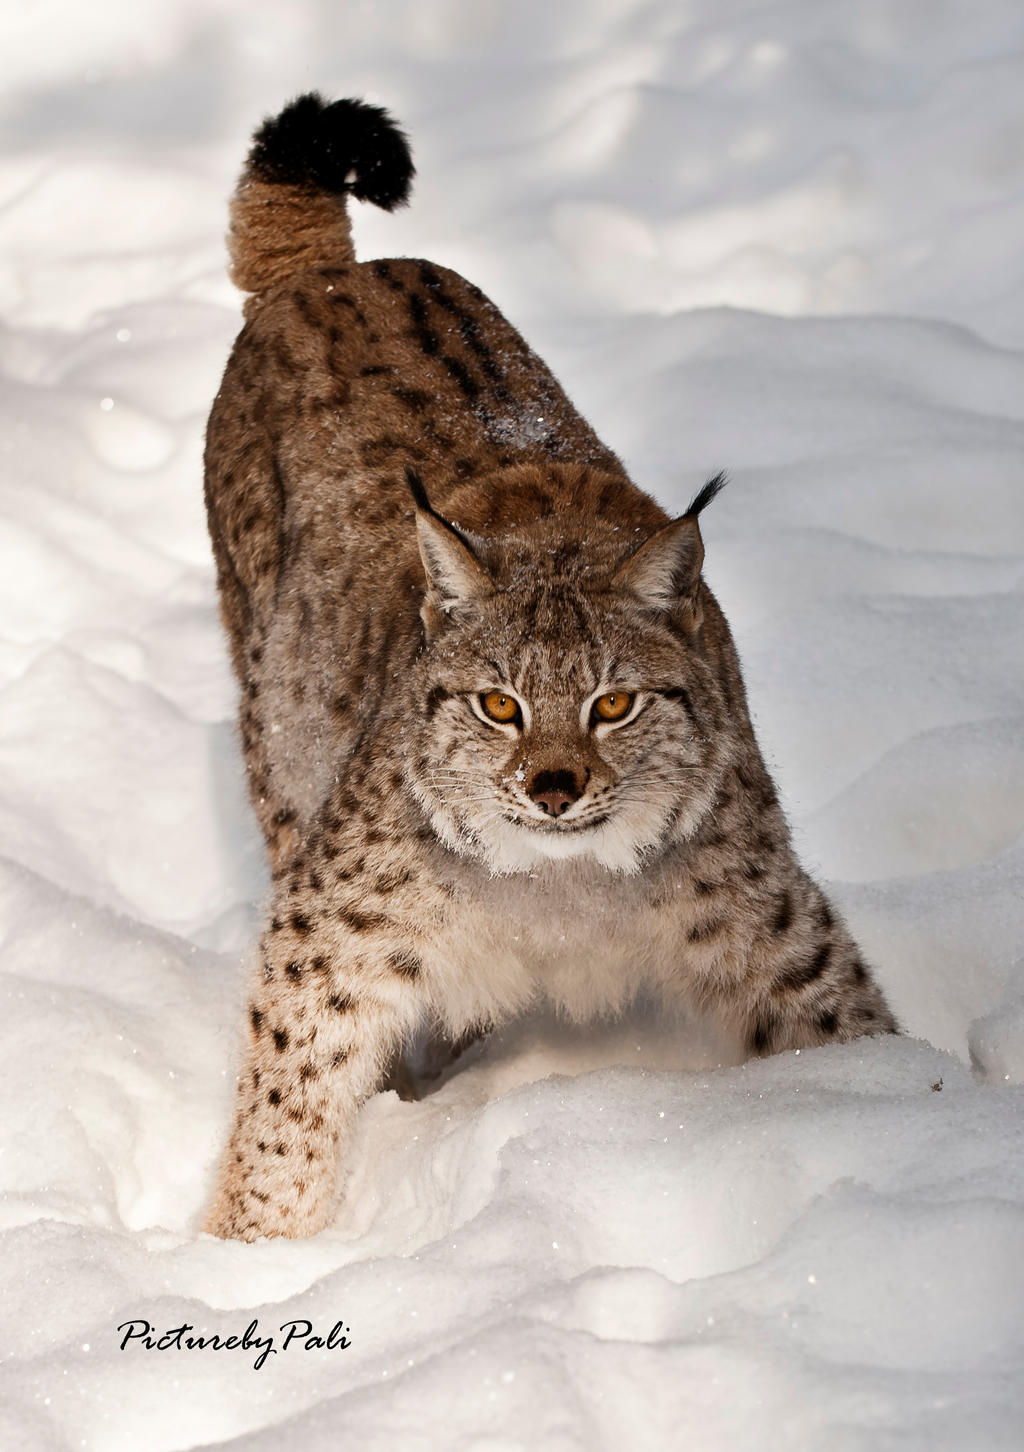 Aggressive  pose of a Lynx by PictureByPali